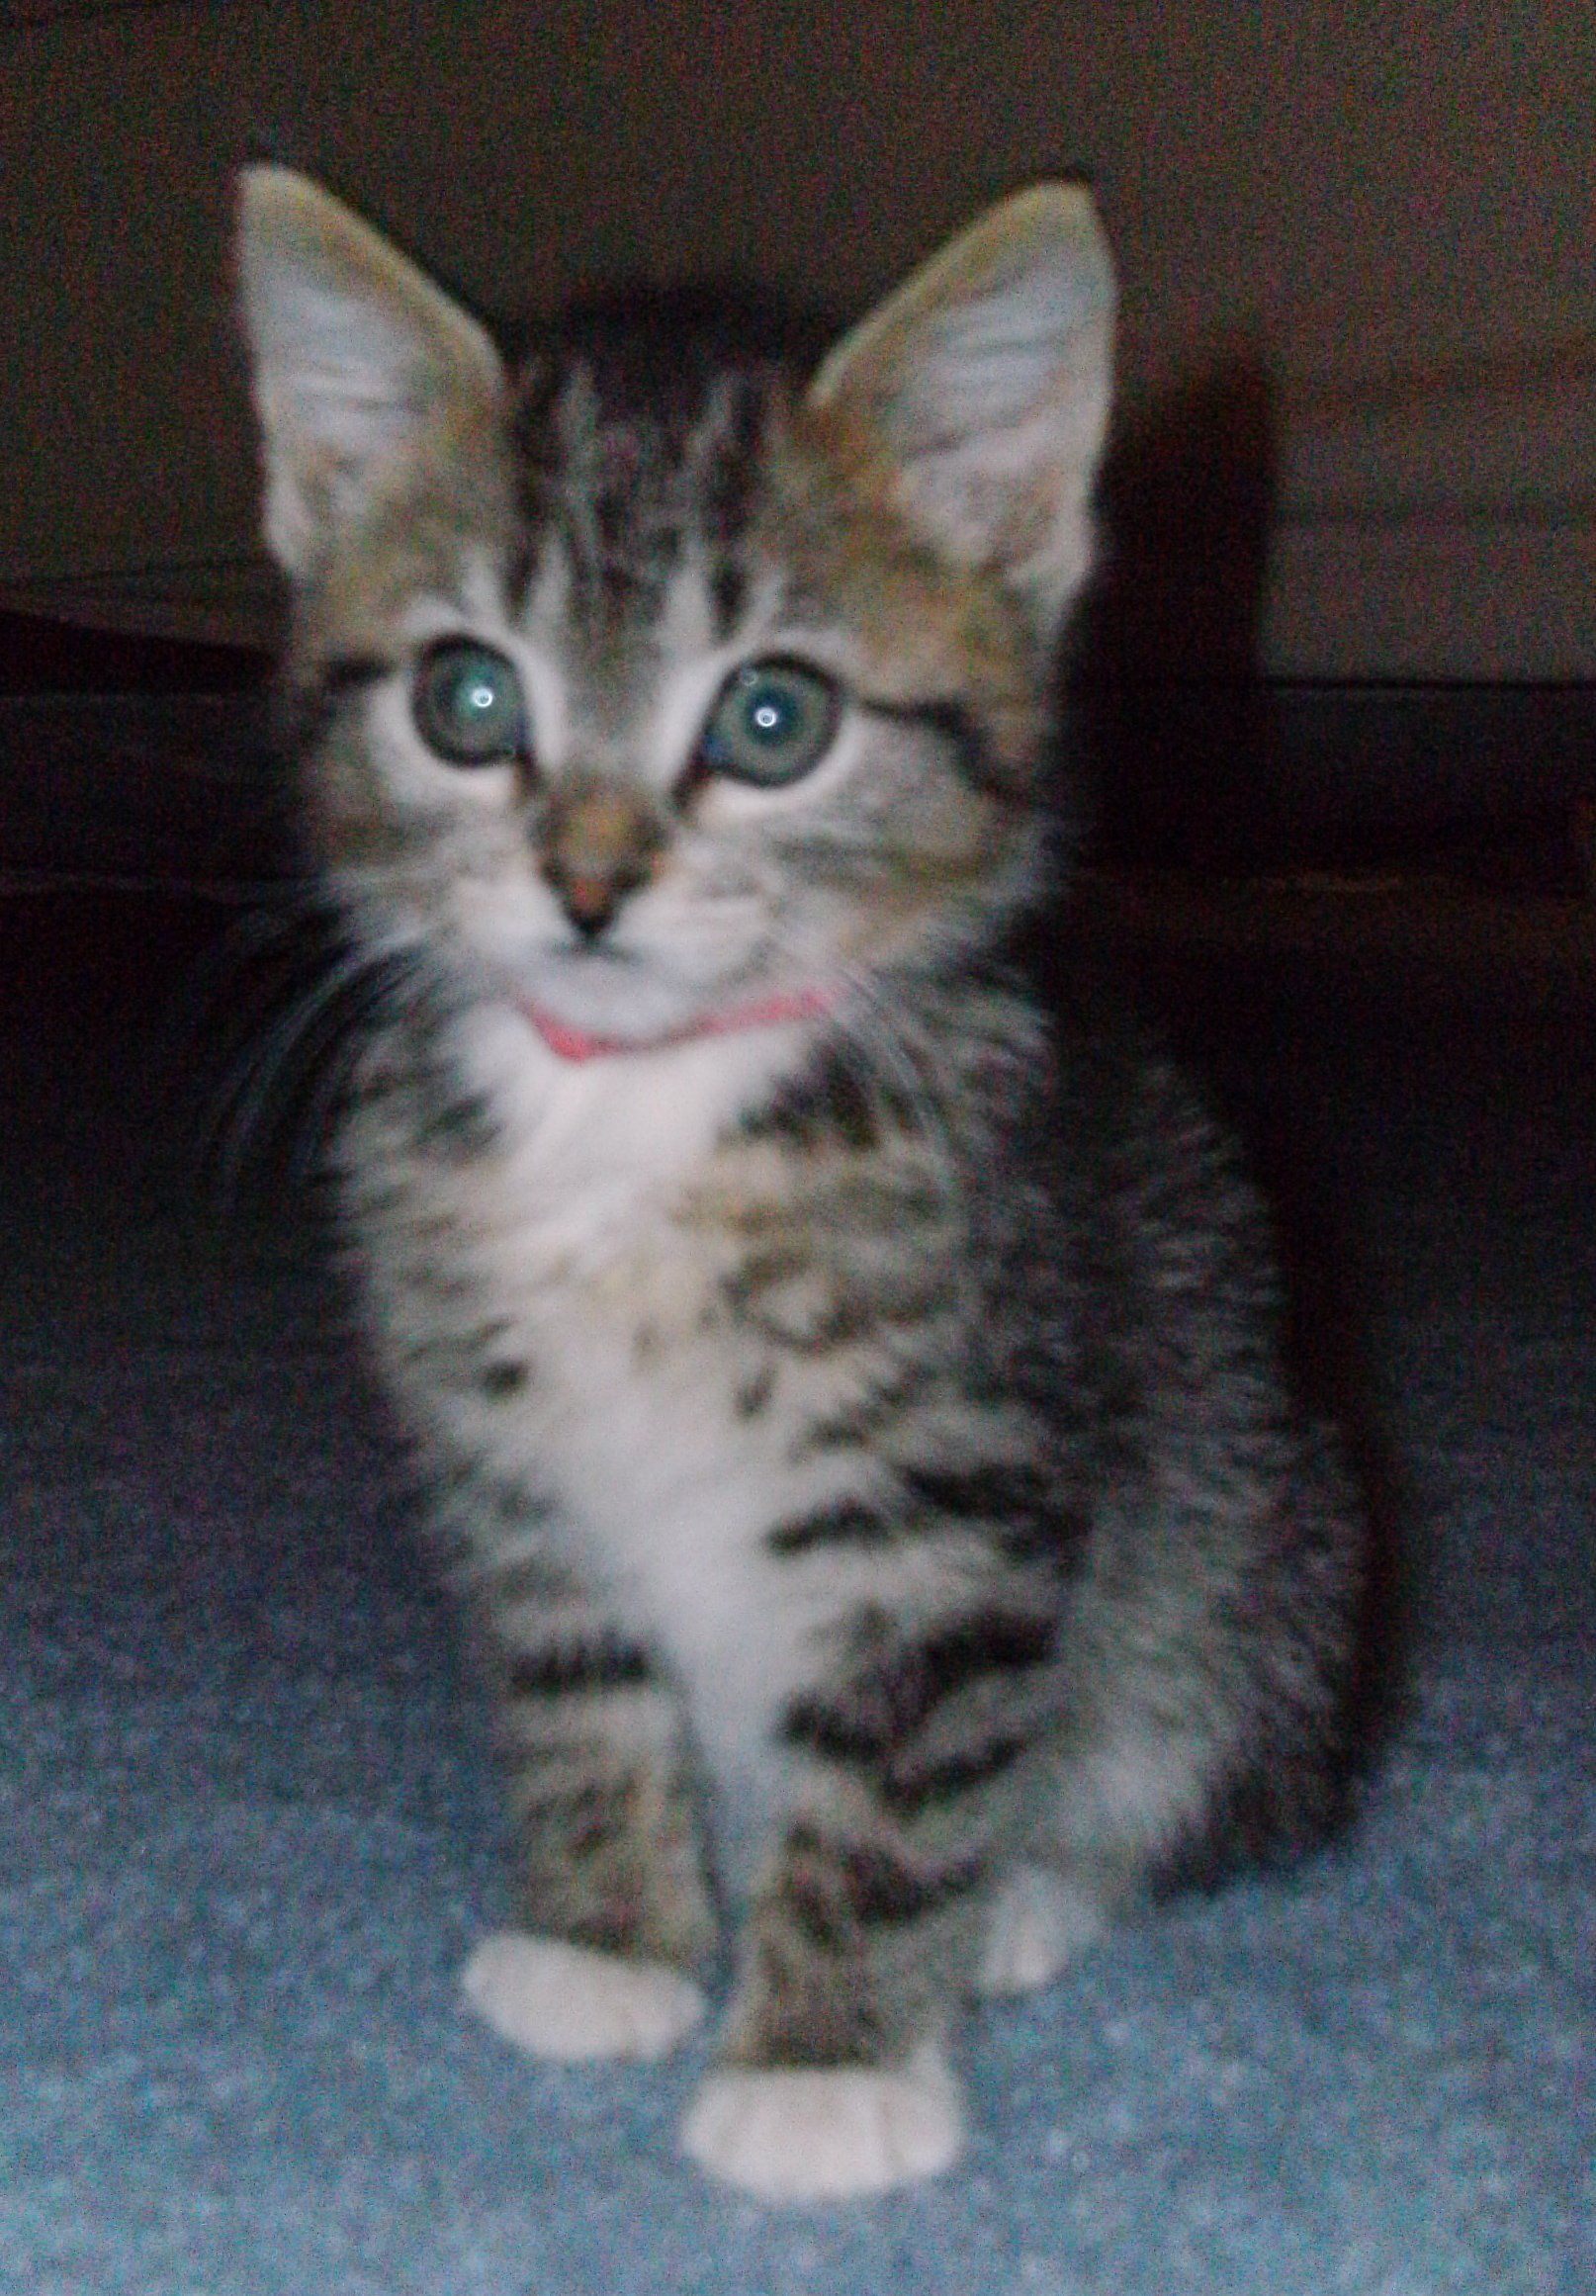 ADOPTED 5/12Remember me? I'm Davy. One of the kittens